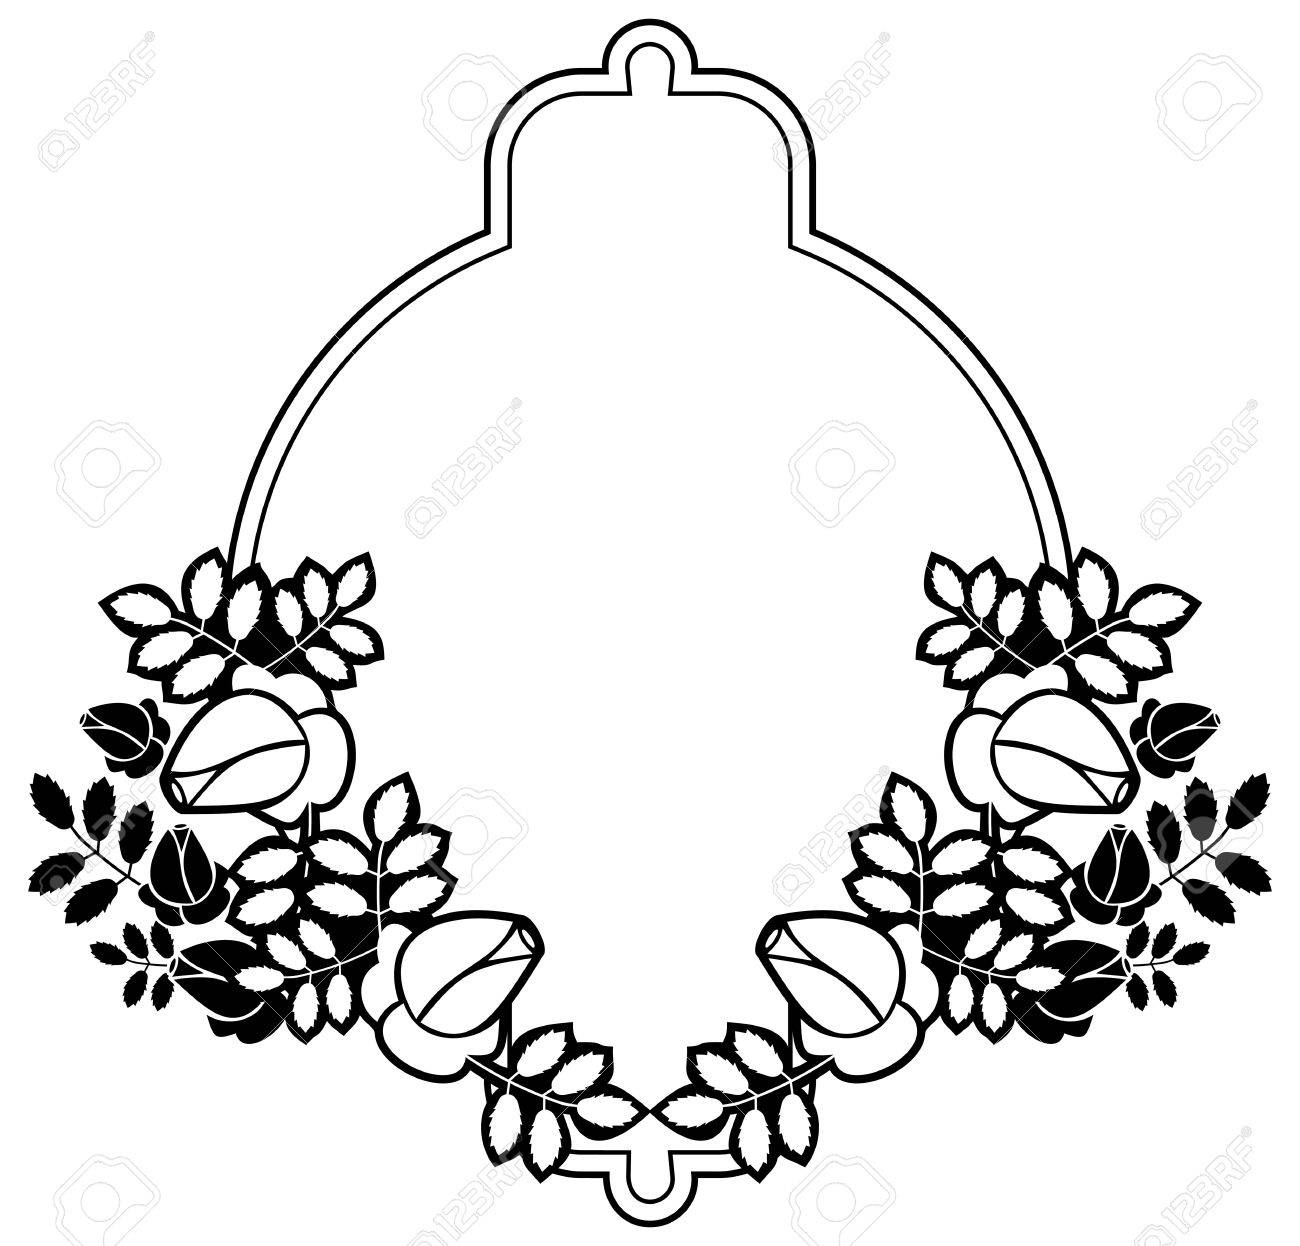 Black and white silhouette floral frame. Ornament for laser engraving.